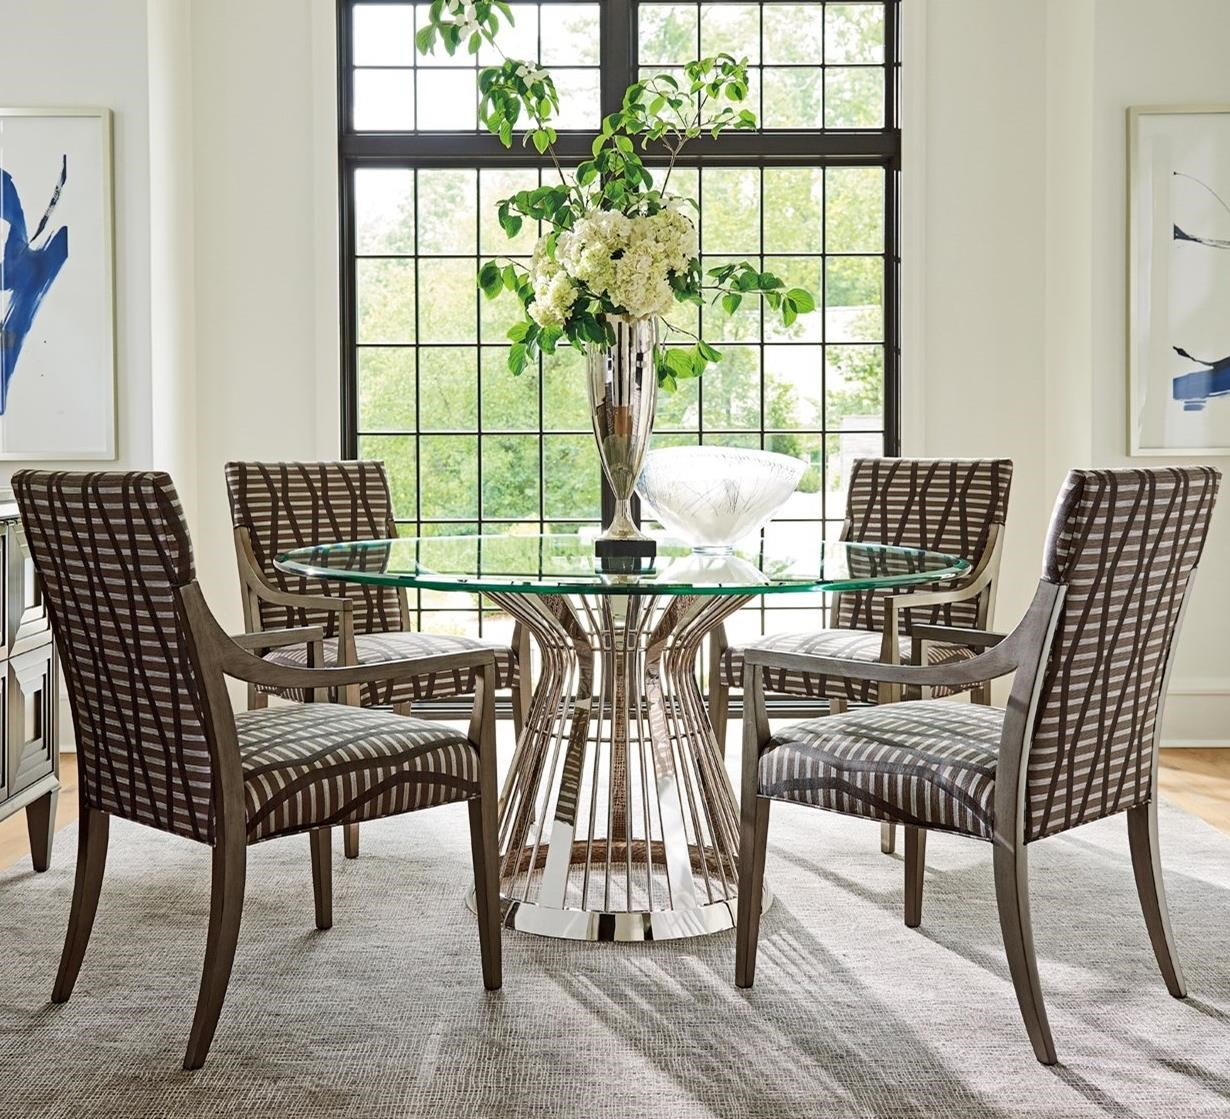 Ariana 5 Pc Dining Set by Lexington at Jacksonville Furniture Mart